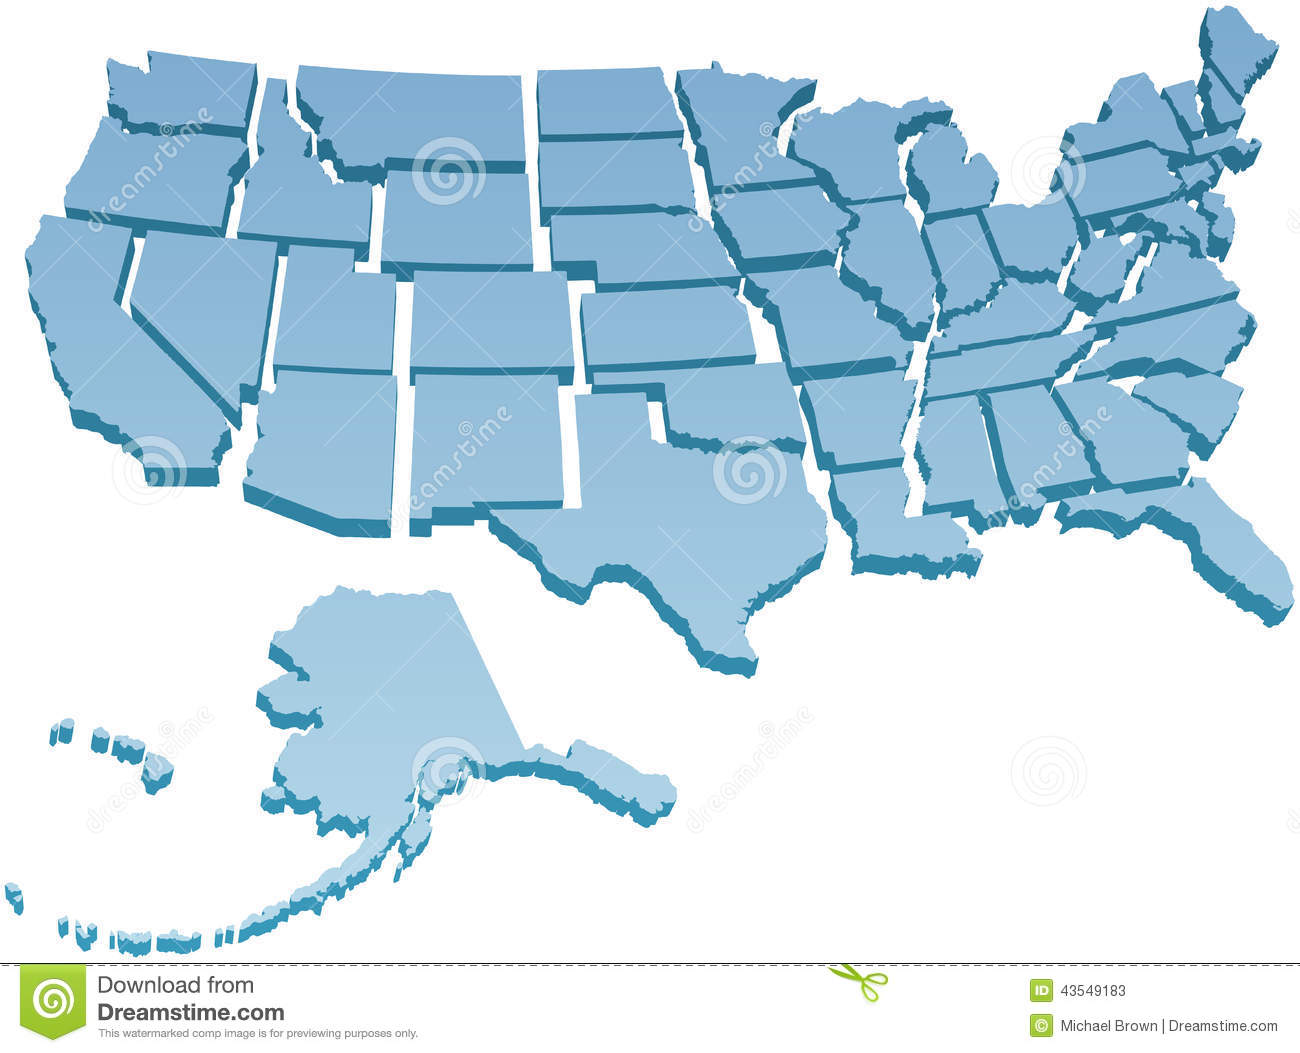 Clipart maps of states. Individual united kid map